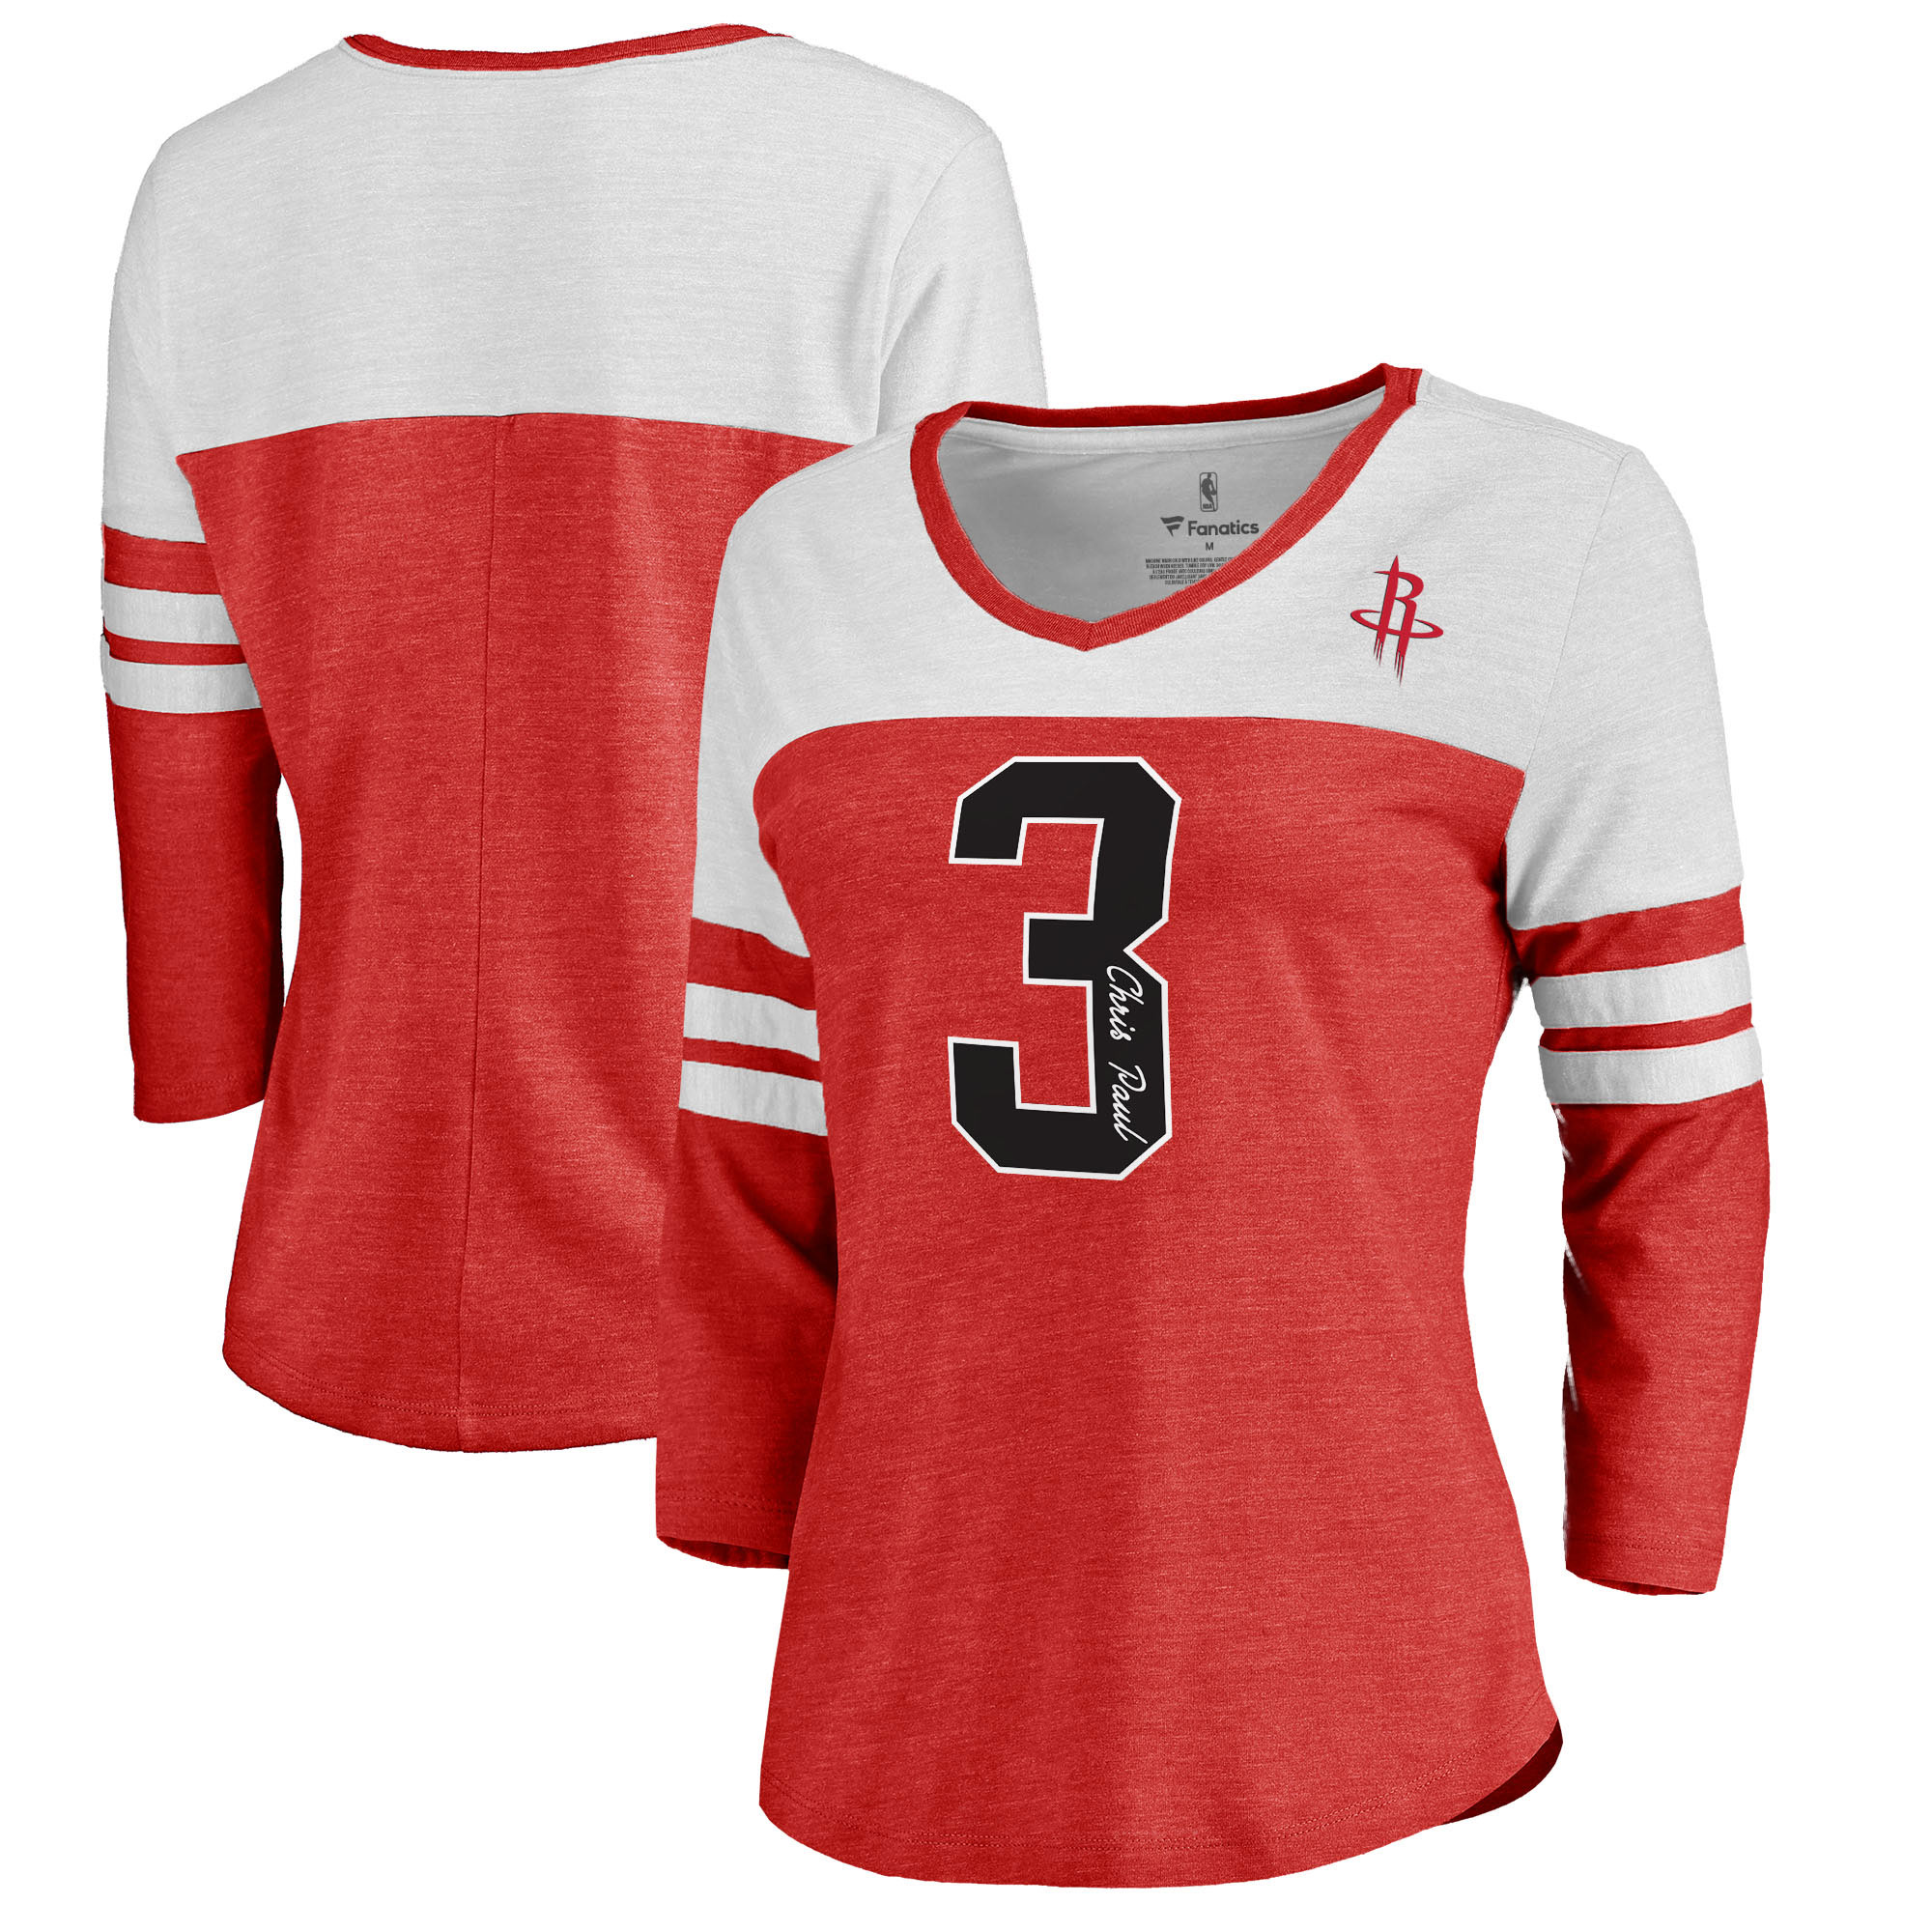 Chris Paul Houston Rockets Fanatics Branded Women's Starstruck Name & Number Tri-Blend 3/4-Sleeve V-Neck T-Shirt - Red